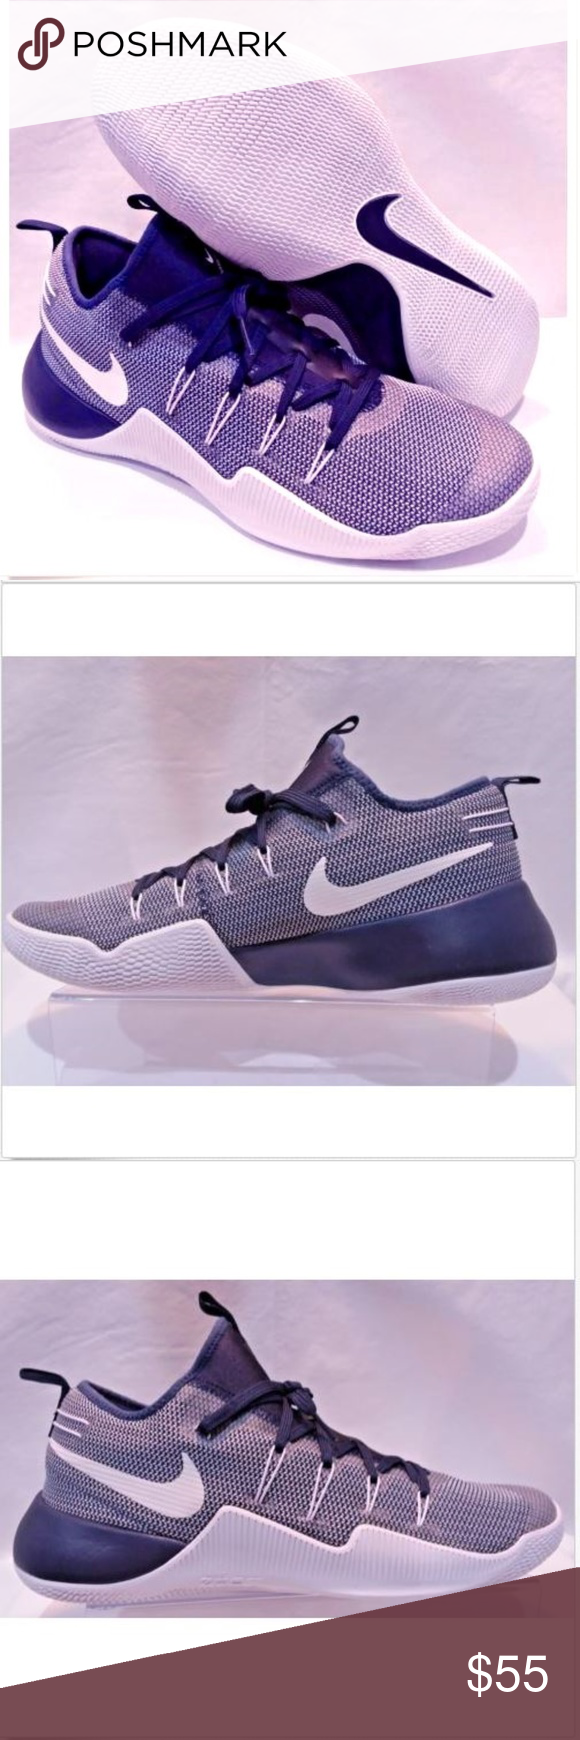 quality design 2637c 9ef03 Nike Hypershift TB Mens Basketball Shoe 844387-410 Nike Hypershift TB Mens  Basketball Shoe Size